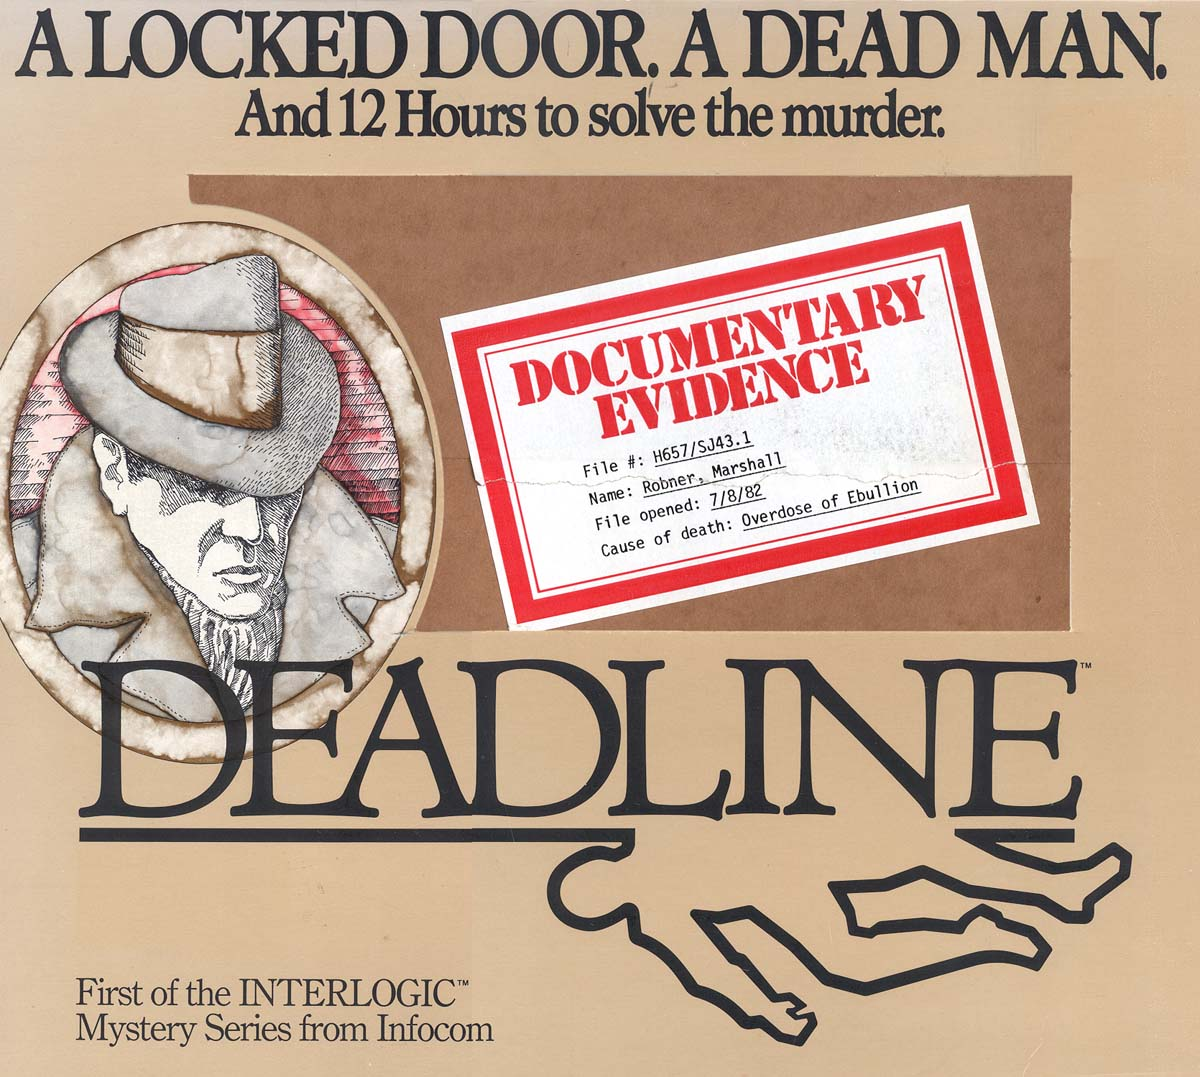 The original box art for Infocom's Deadline